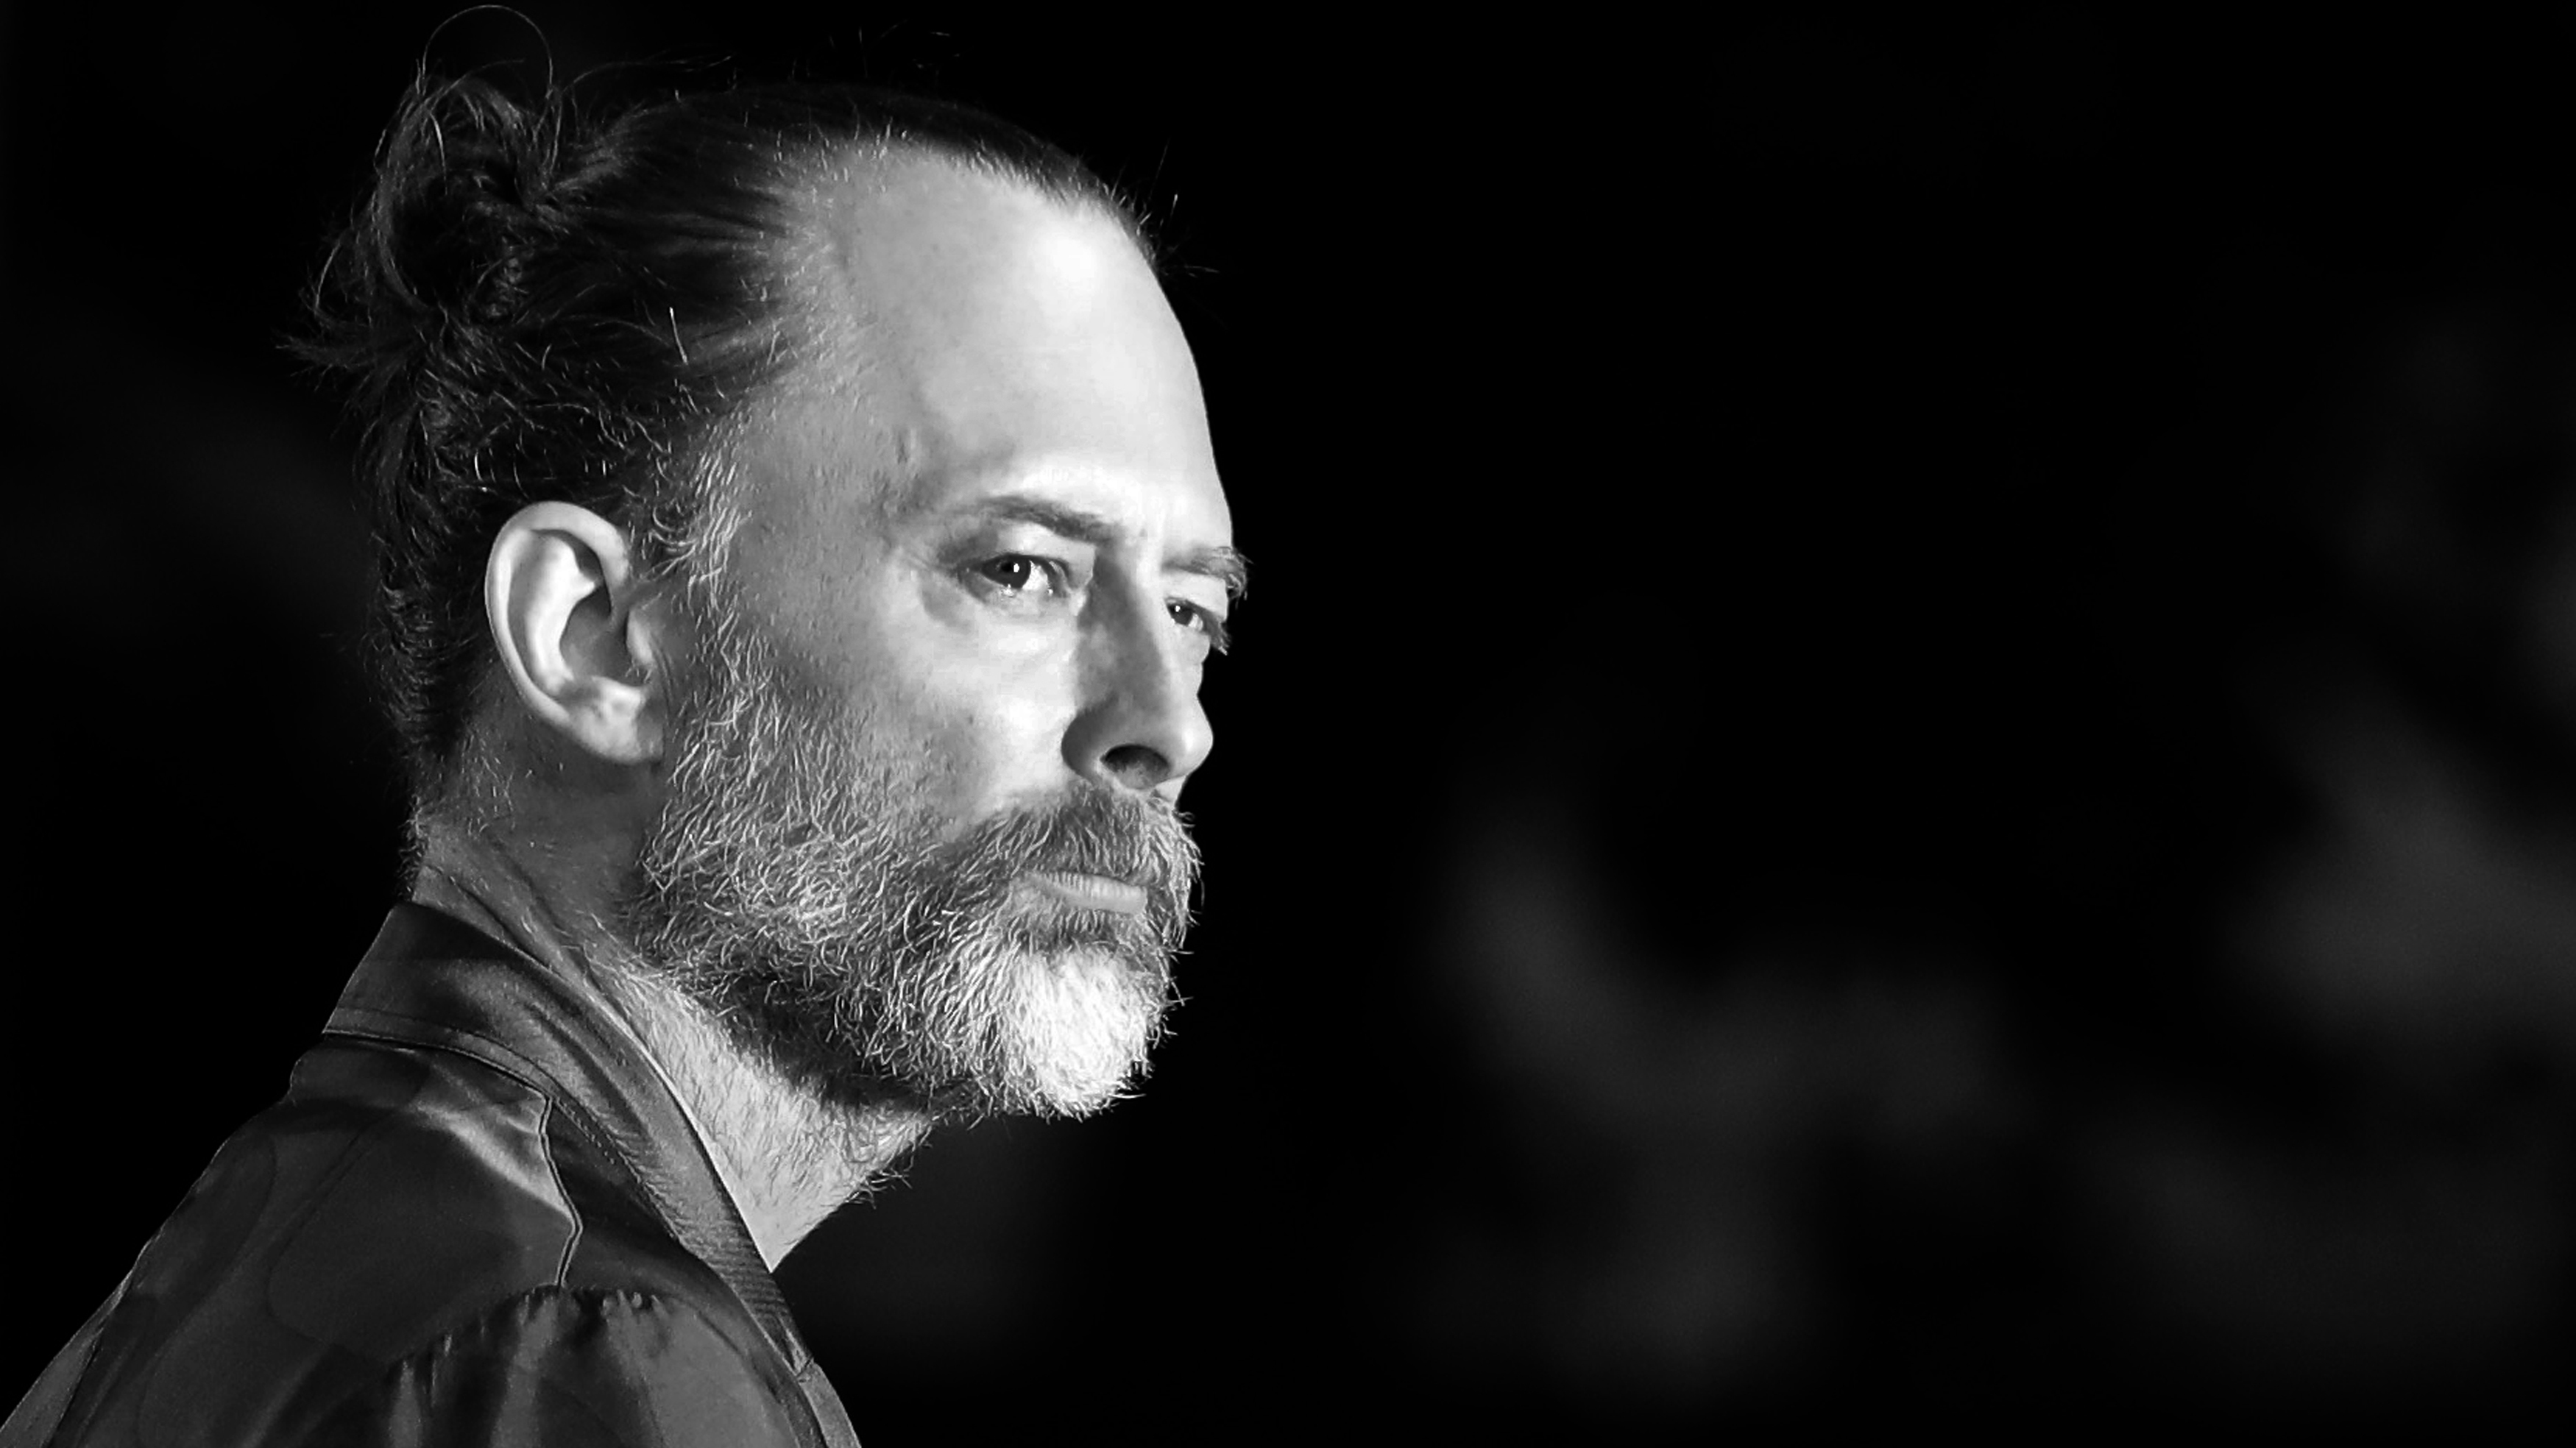 Thom Yorke's third solo album ANIMA represents a recalibration of his creative process.